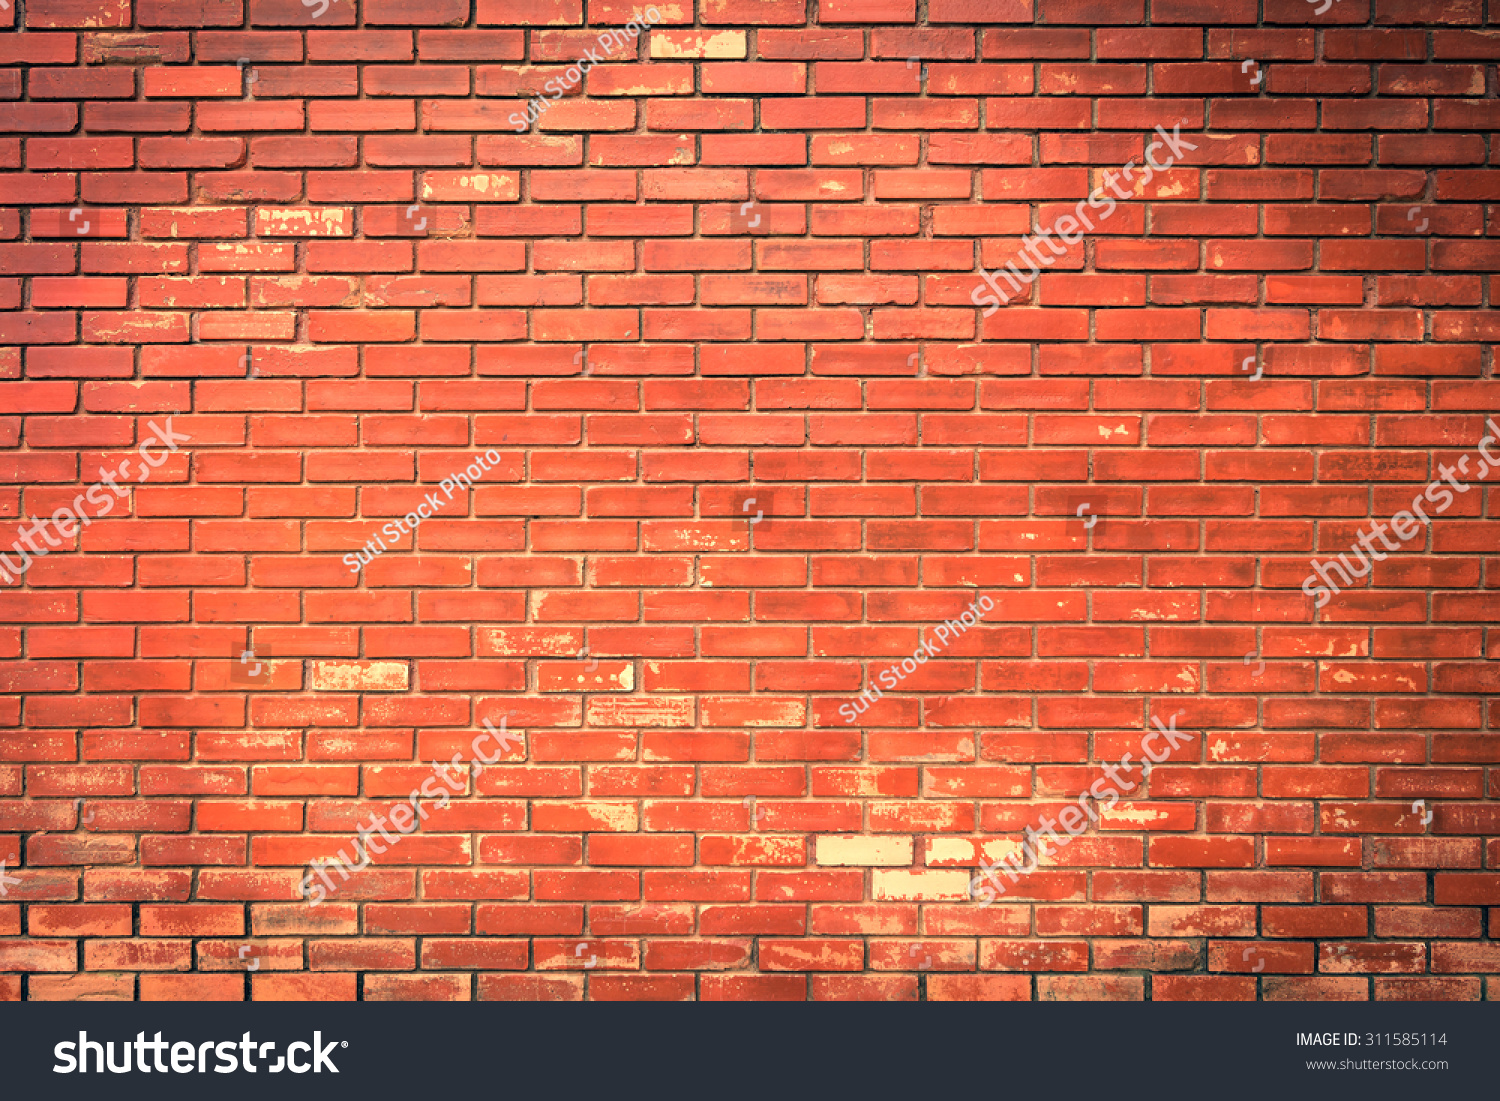 Brick Wall Construction : Brick wall texture background material industry stock